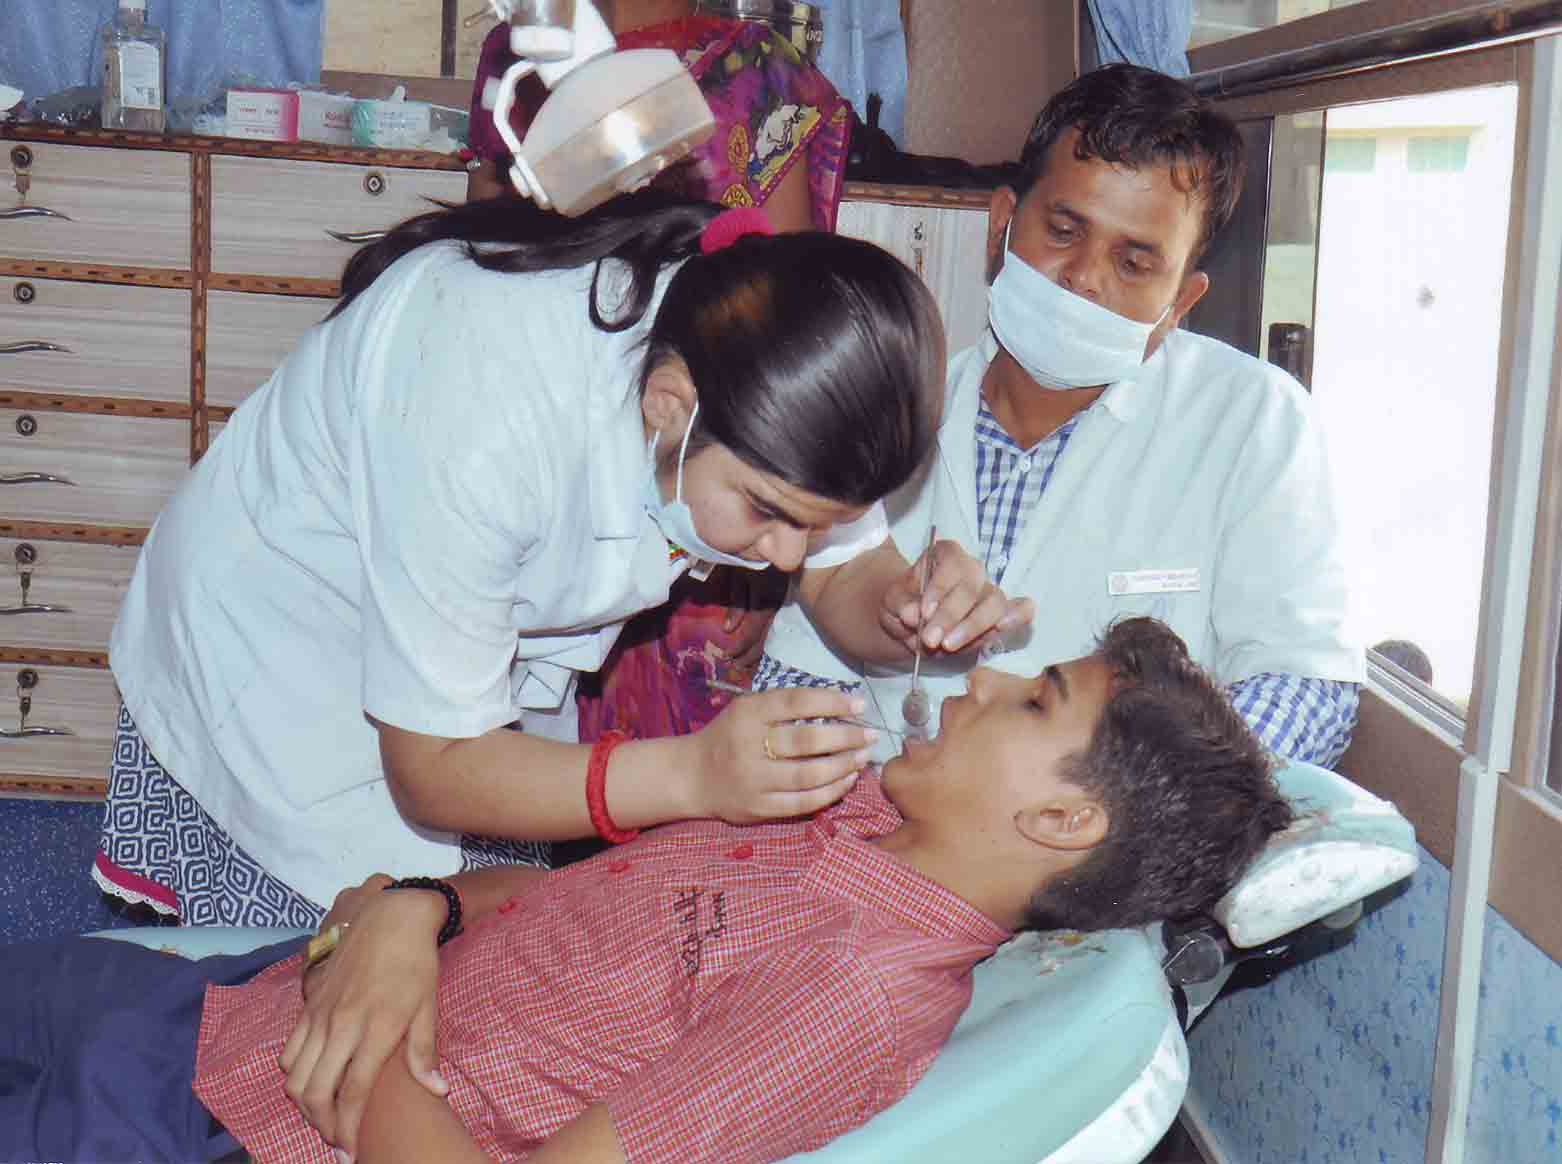 Dental checkup by JODHPUR DENTAL COLLAGE